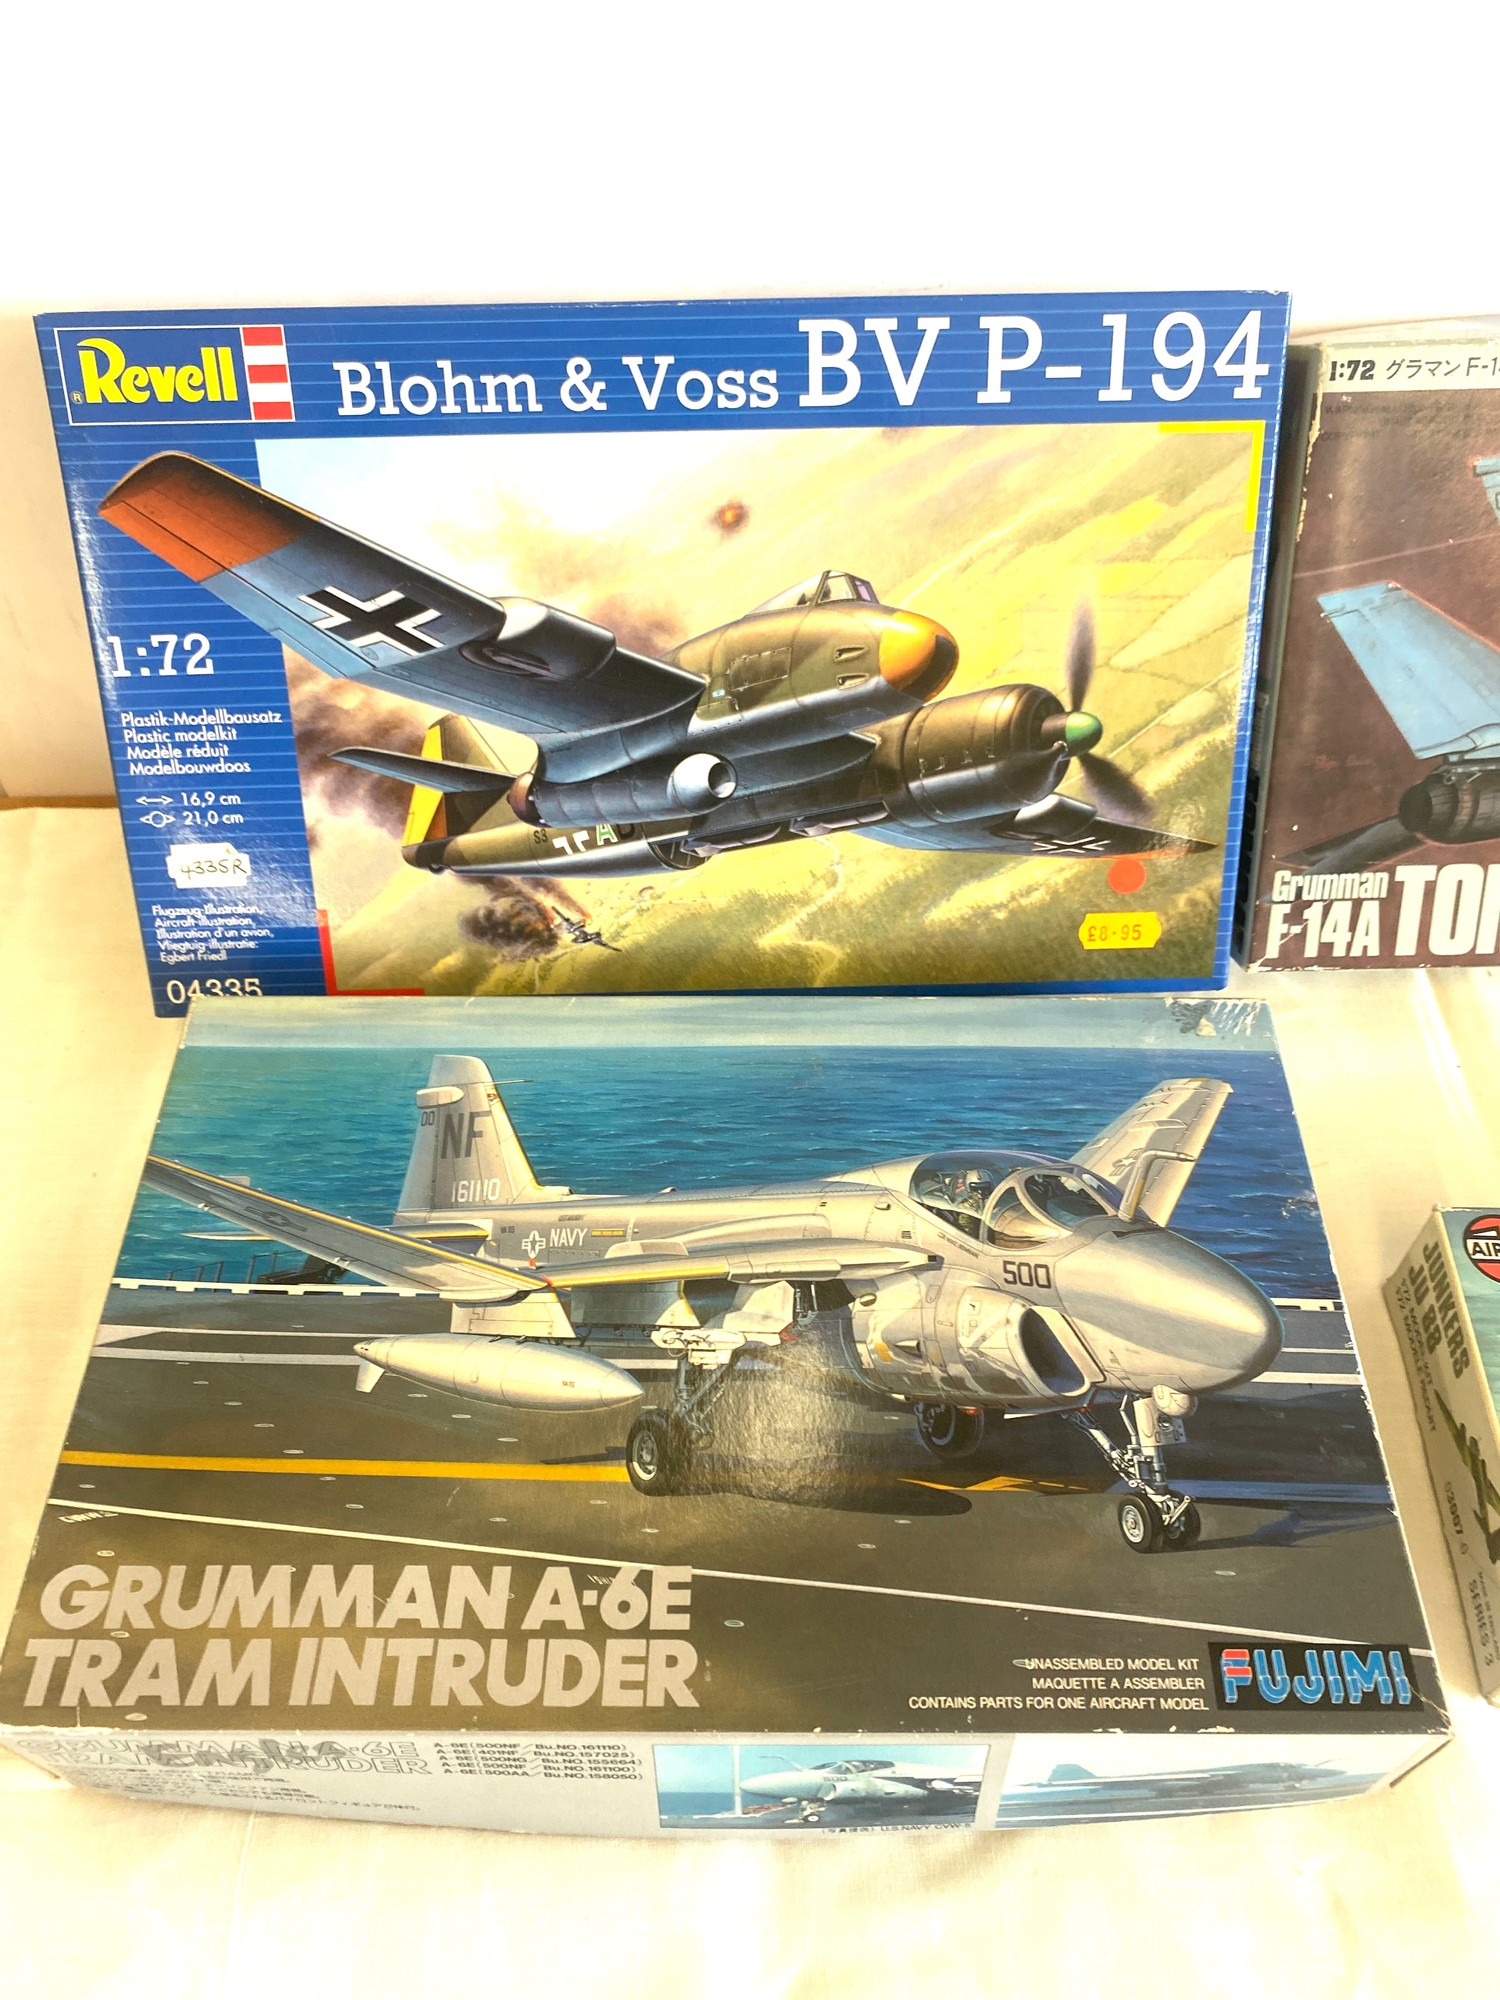 Selection of 4 boxed model air crafts includes, Grumman A-6E Tram, Grumman F-14A Tomcat, Revell - Image 3 of 3